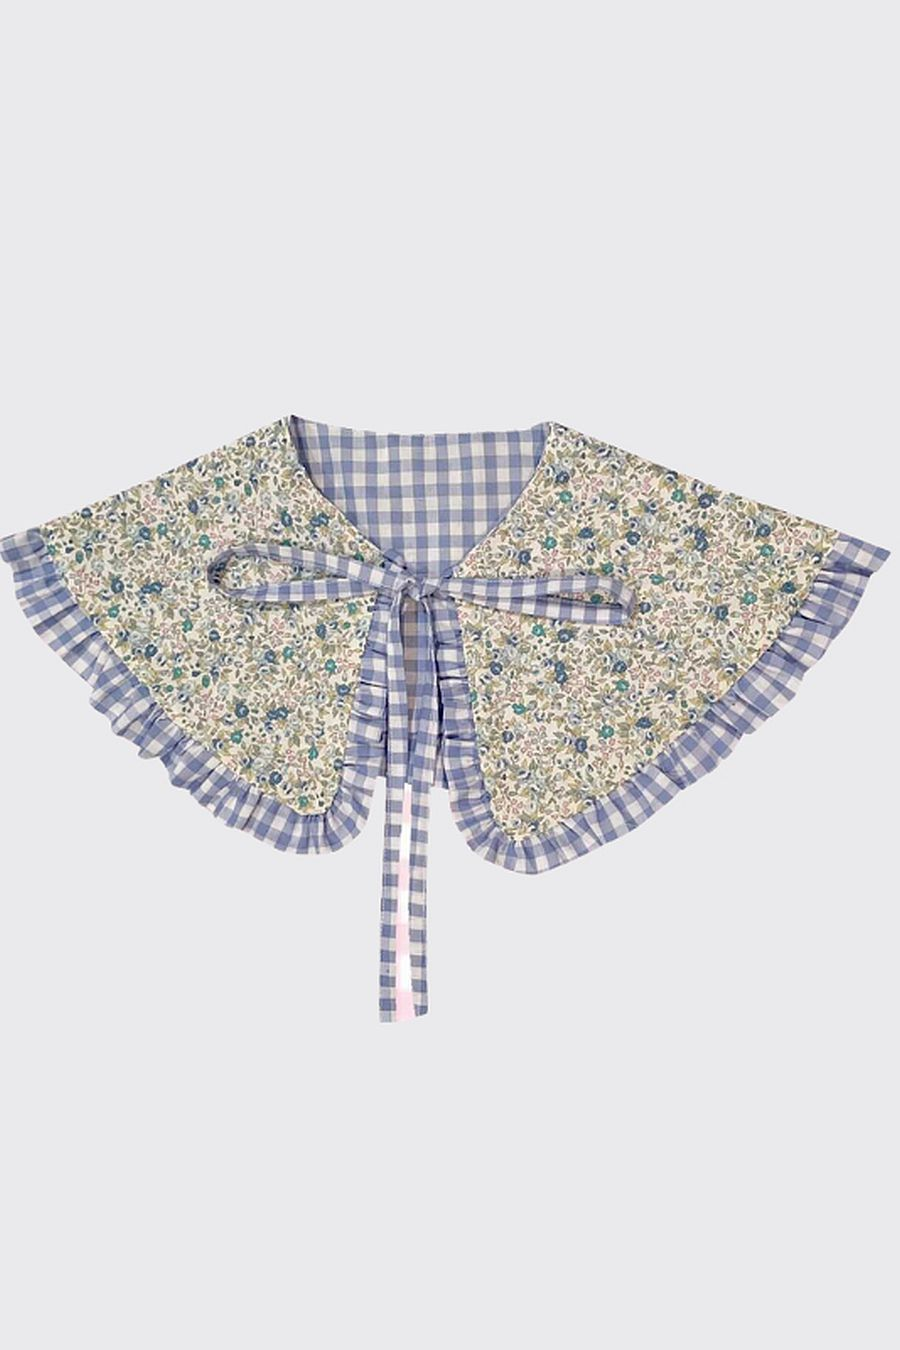 Big Baby Goes To Work Ruffle Collar - Floral/Gingham